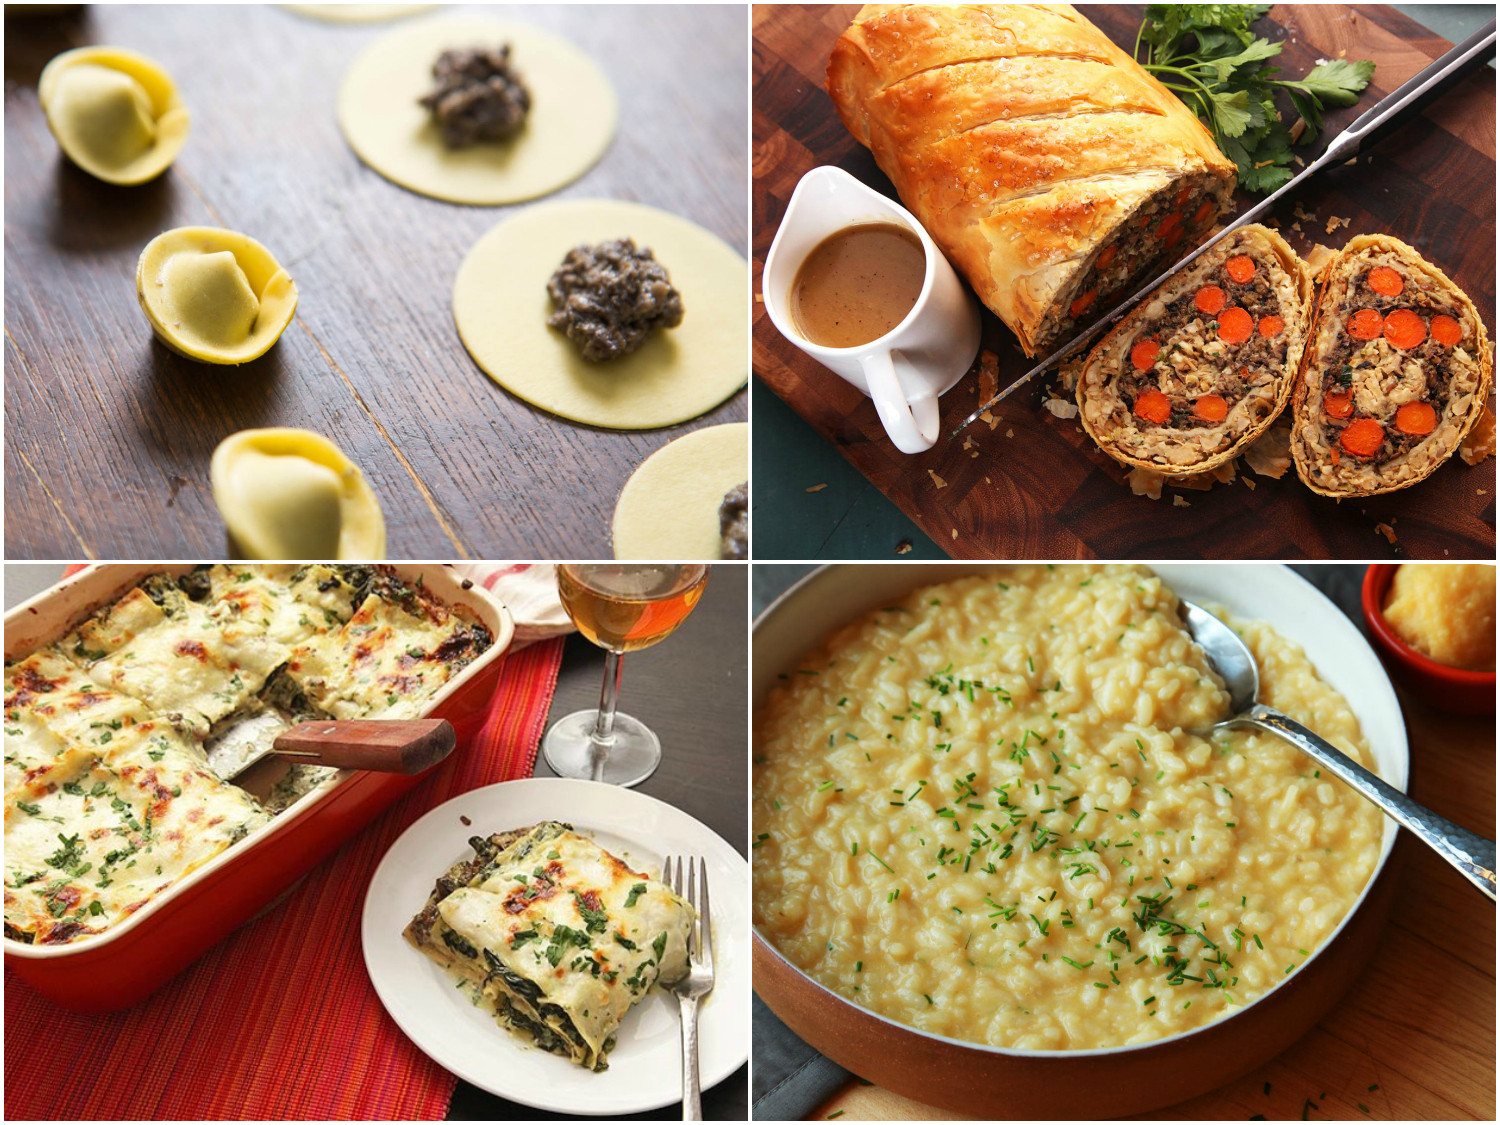 Vegetarian Holiday Main Dishes  13 Festive Ve arian Main Dishes That Even Omnivores Will